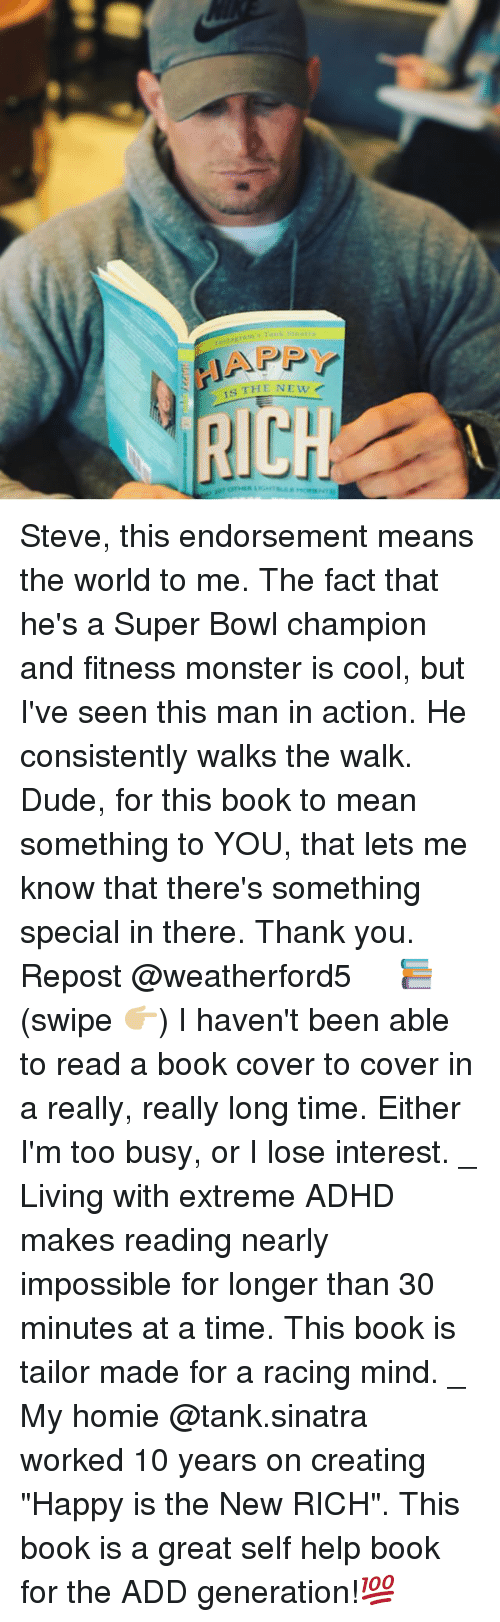 """Dude, Funny, and Homie: tbstagrar Tank s  IAPP  IS THE NEW Steve, this endorsement means the world to me. The fact that he's a Super Bowl champion and fitness monster is cool, but I've seen this man in action. He consistently walks the walk. Dude, for this book to mean something to YOU, that lets me know that there's something special in there. Thank you. Repost @weatherford5 ・・・ 📚(swipe 👉🏼) I haven't been able to read a book cover to cover in a really, really long time. Either I'm too busy, or I lose interest. _ Living with extreme ADHD makes reading nearly impossible for longer than 30 minutes at a time. This book is tailor made for a racing mind. _ My homie @tank.sinatra worked 10 years on creating """"Happy is the New RICH"""". This book is a great self help book for the ADD generation!💯"""